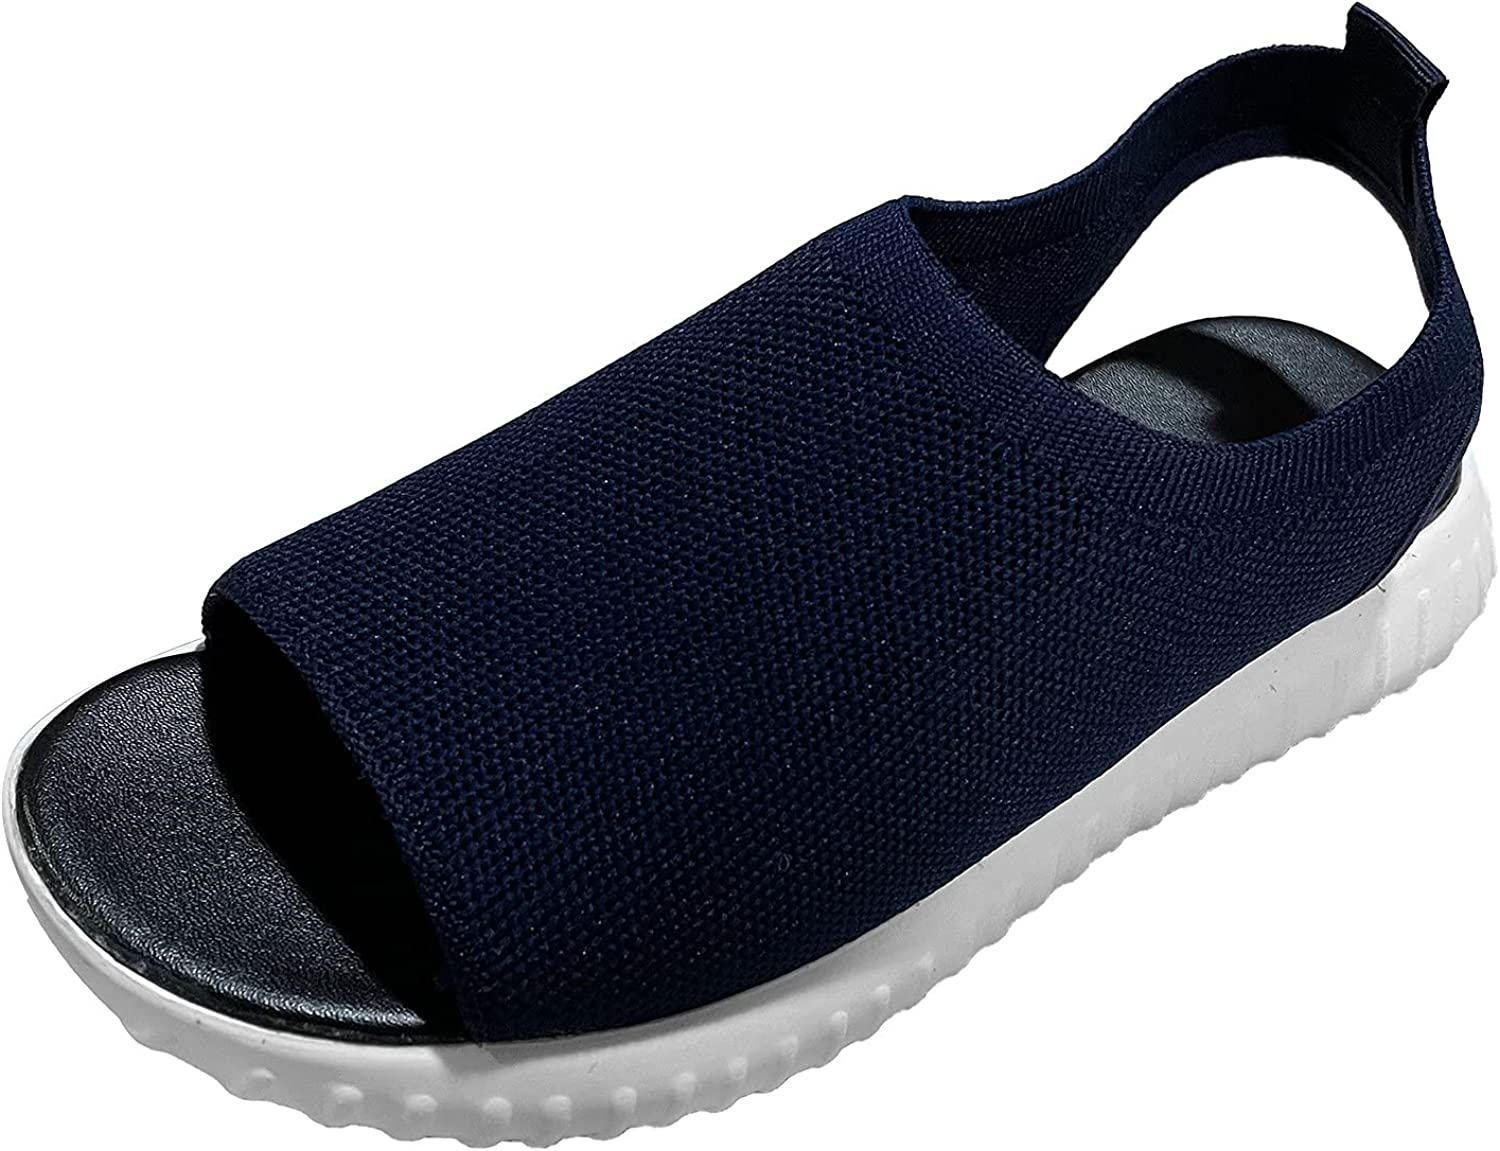 Gyouanime Sports Shoes peep Toe Breathable Max 61% Challenge the lowest price OFF Sandals Pl Beach mesh